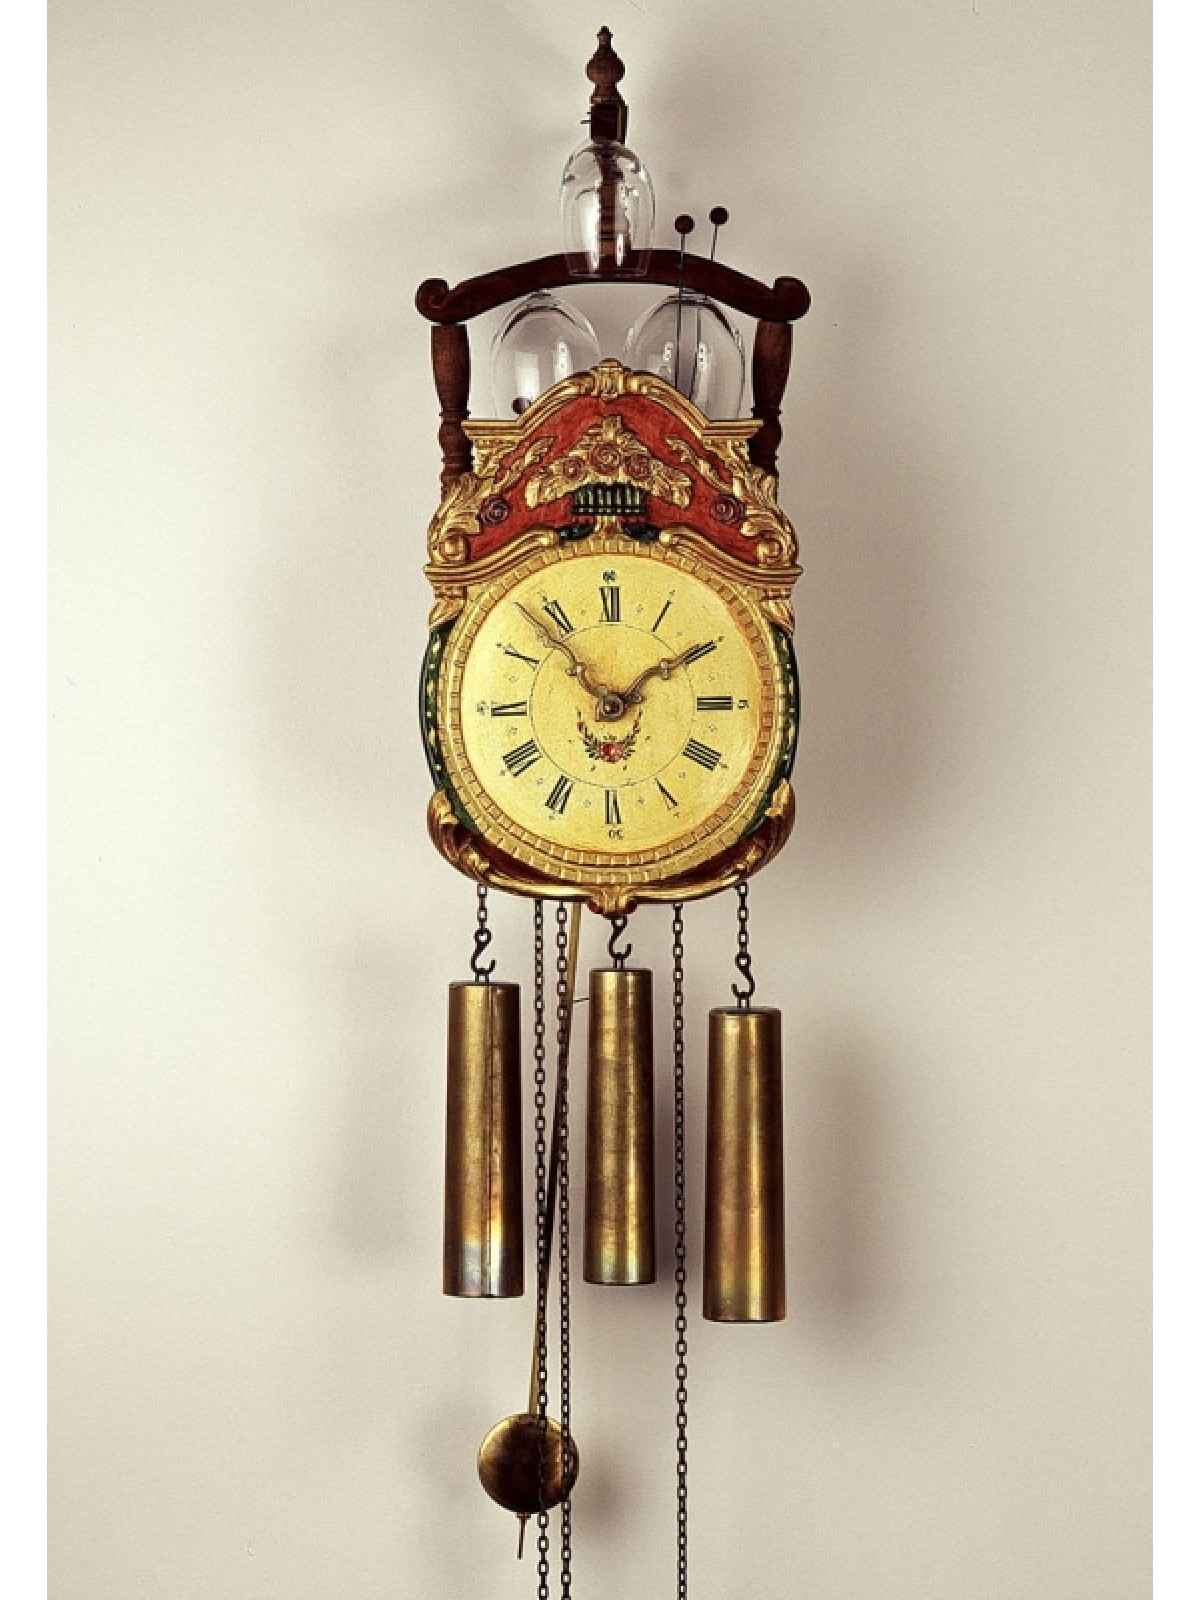 8 Days Shield Clock with glass bells